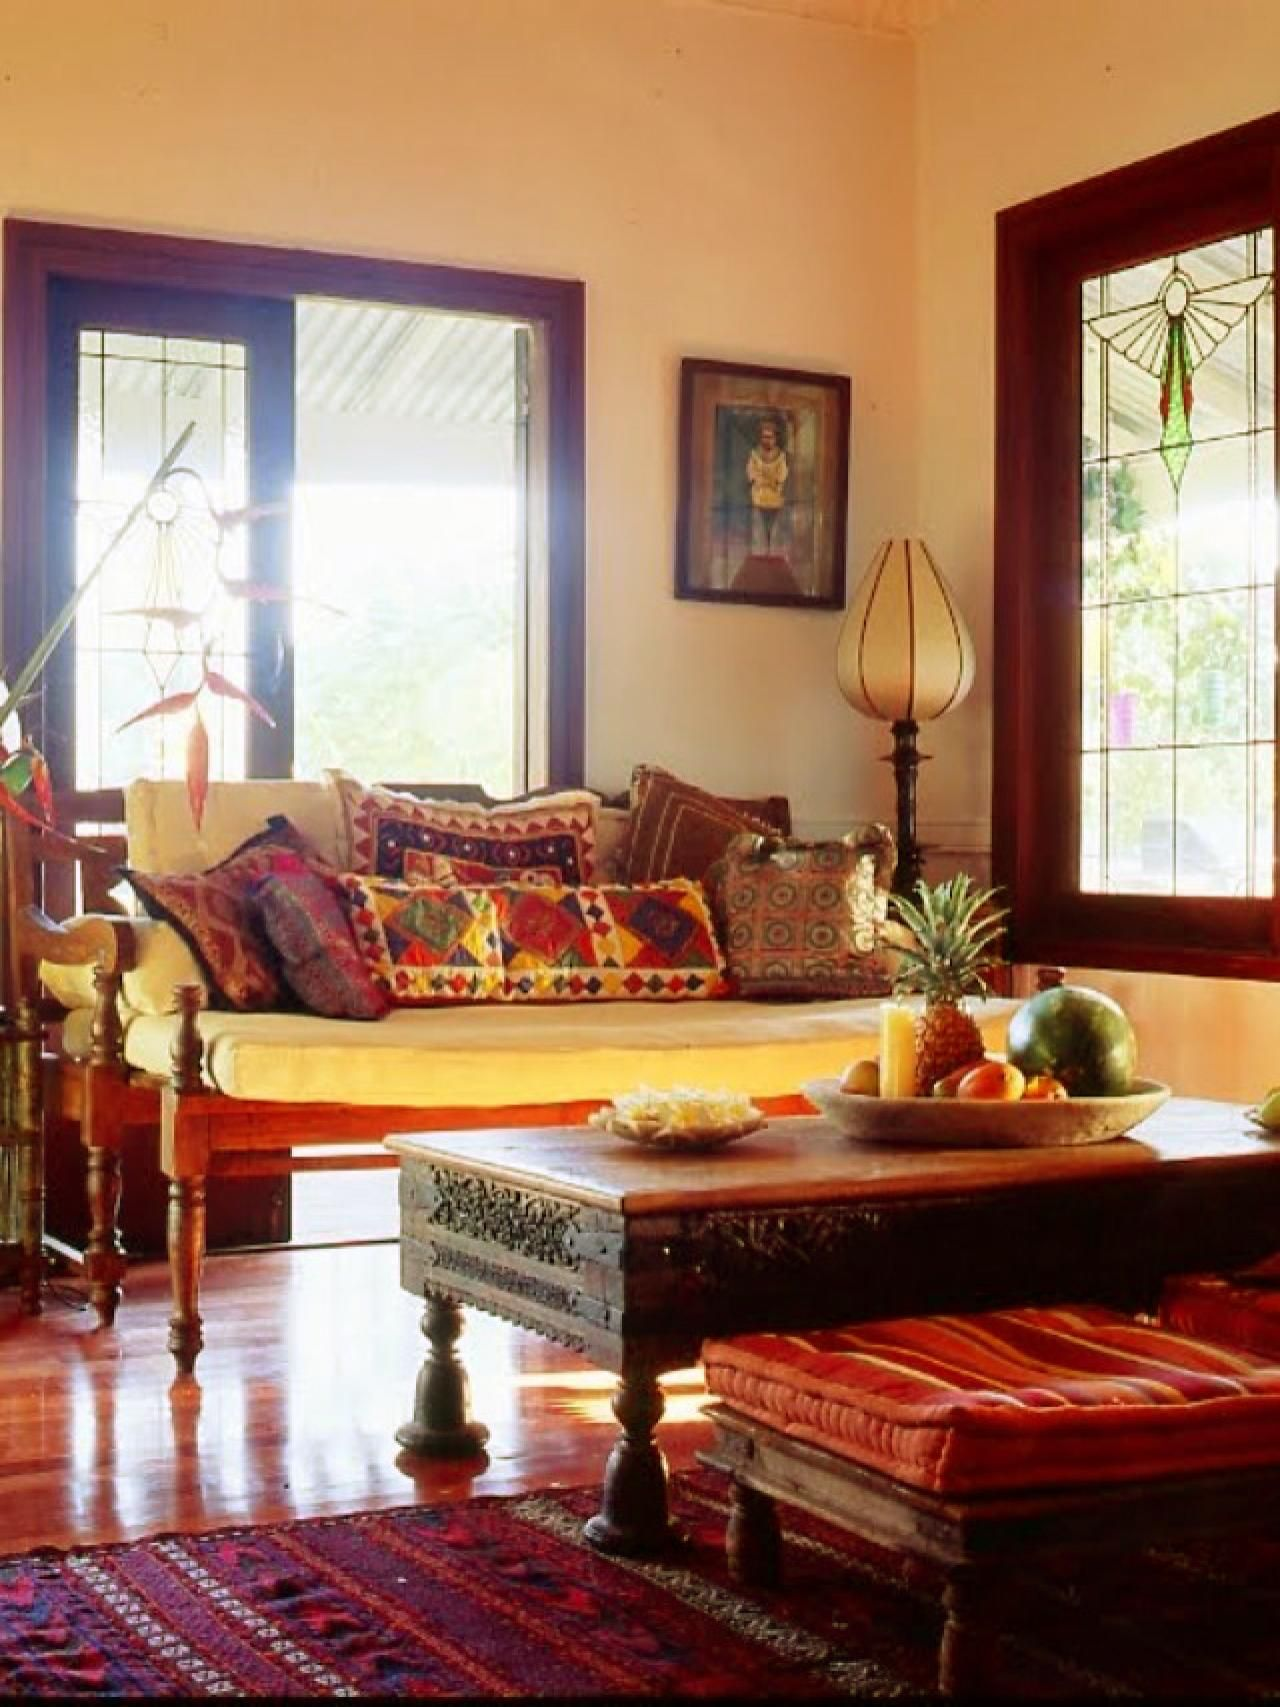 12 Spaces Inspired by India | Hgtv, India and Decorating